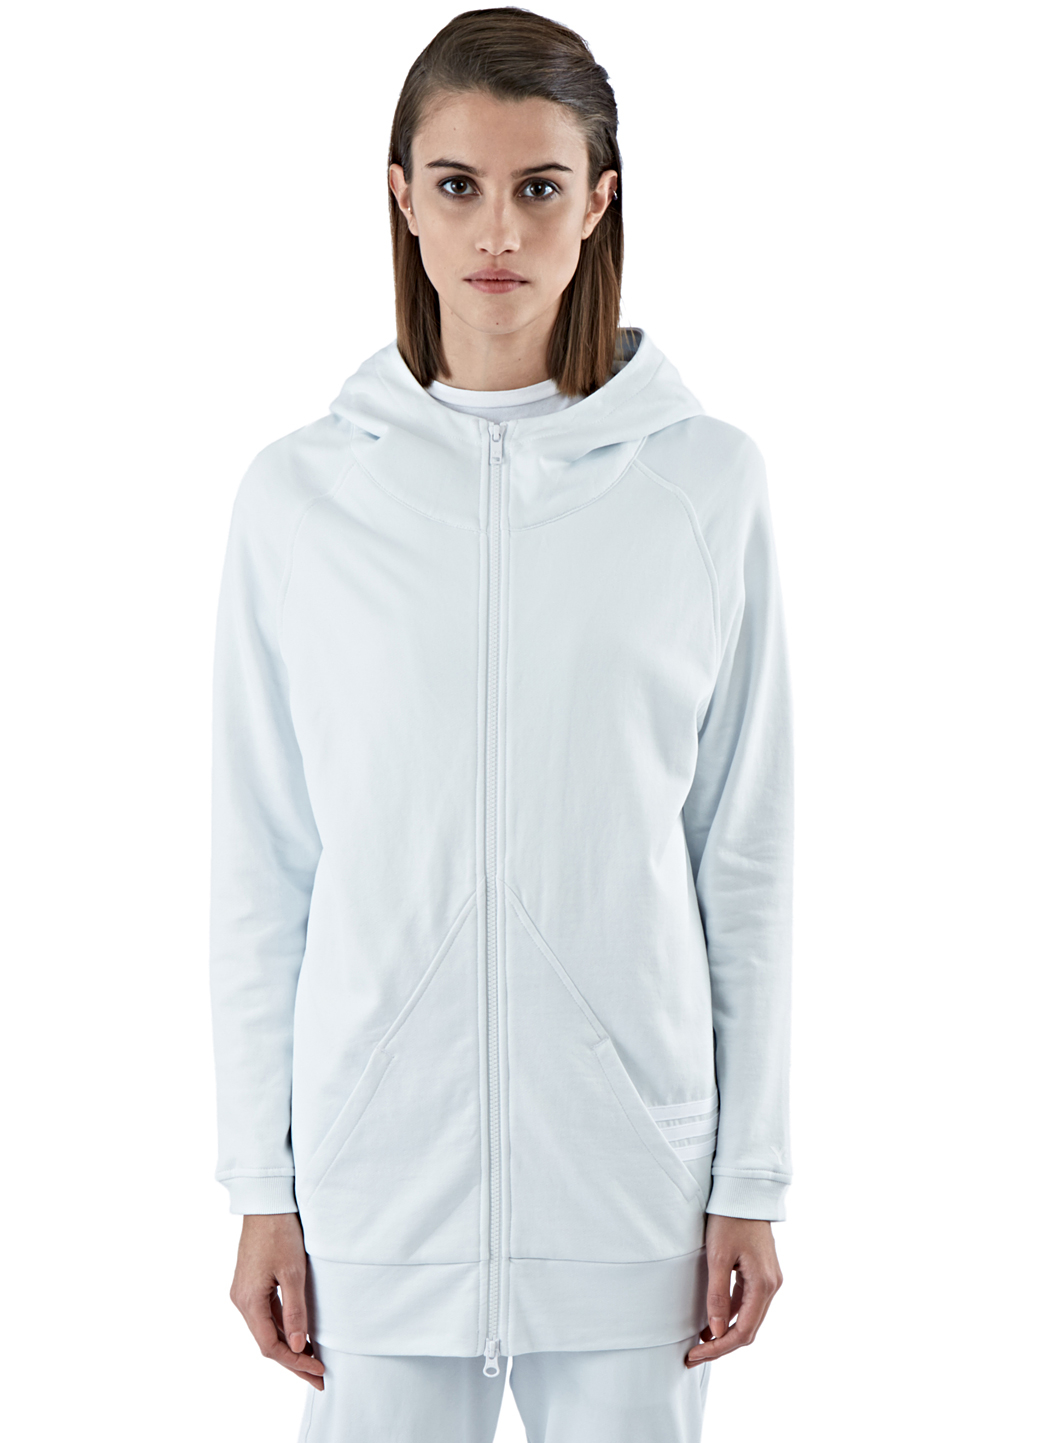 Y-3 Women's Long Zip-up Hooded Sweater In White in White | Lyst